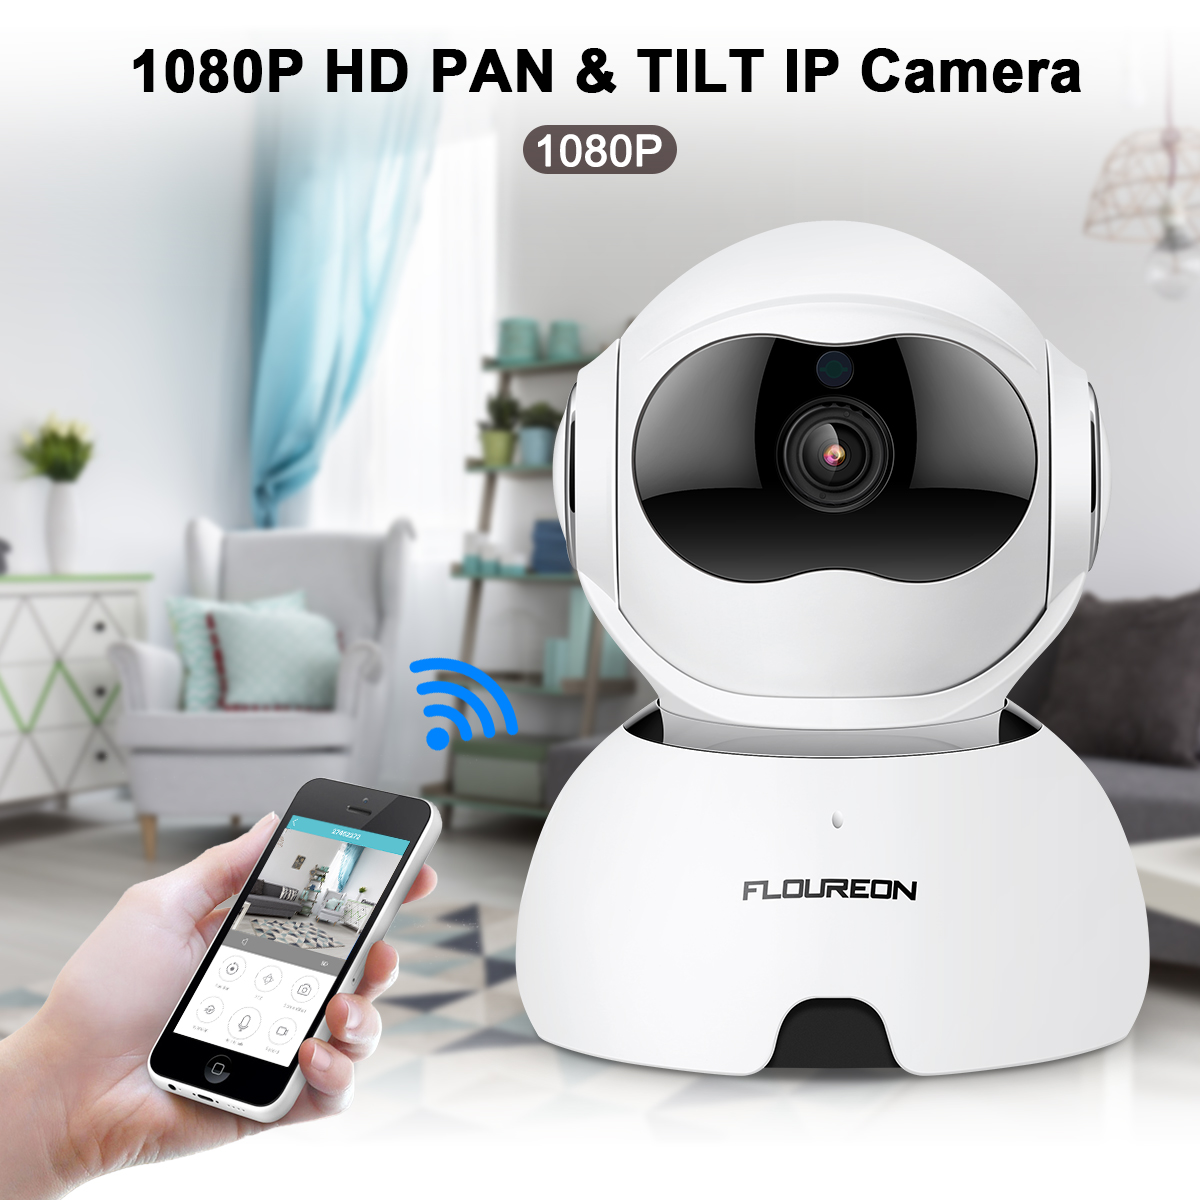 FLOUREON Q10 1080P 2MP Wireless Smart Wi-Fi IP Camera Pan Tilt Alarm TF Card Slot White Home Security Surveillance